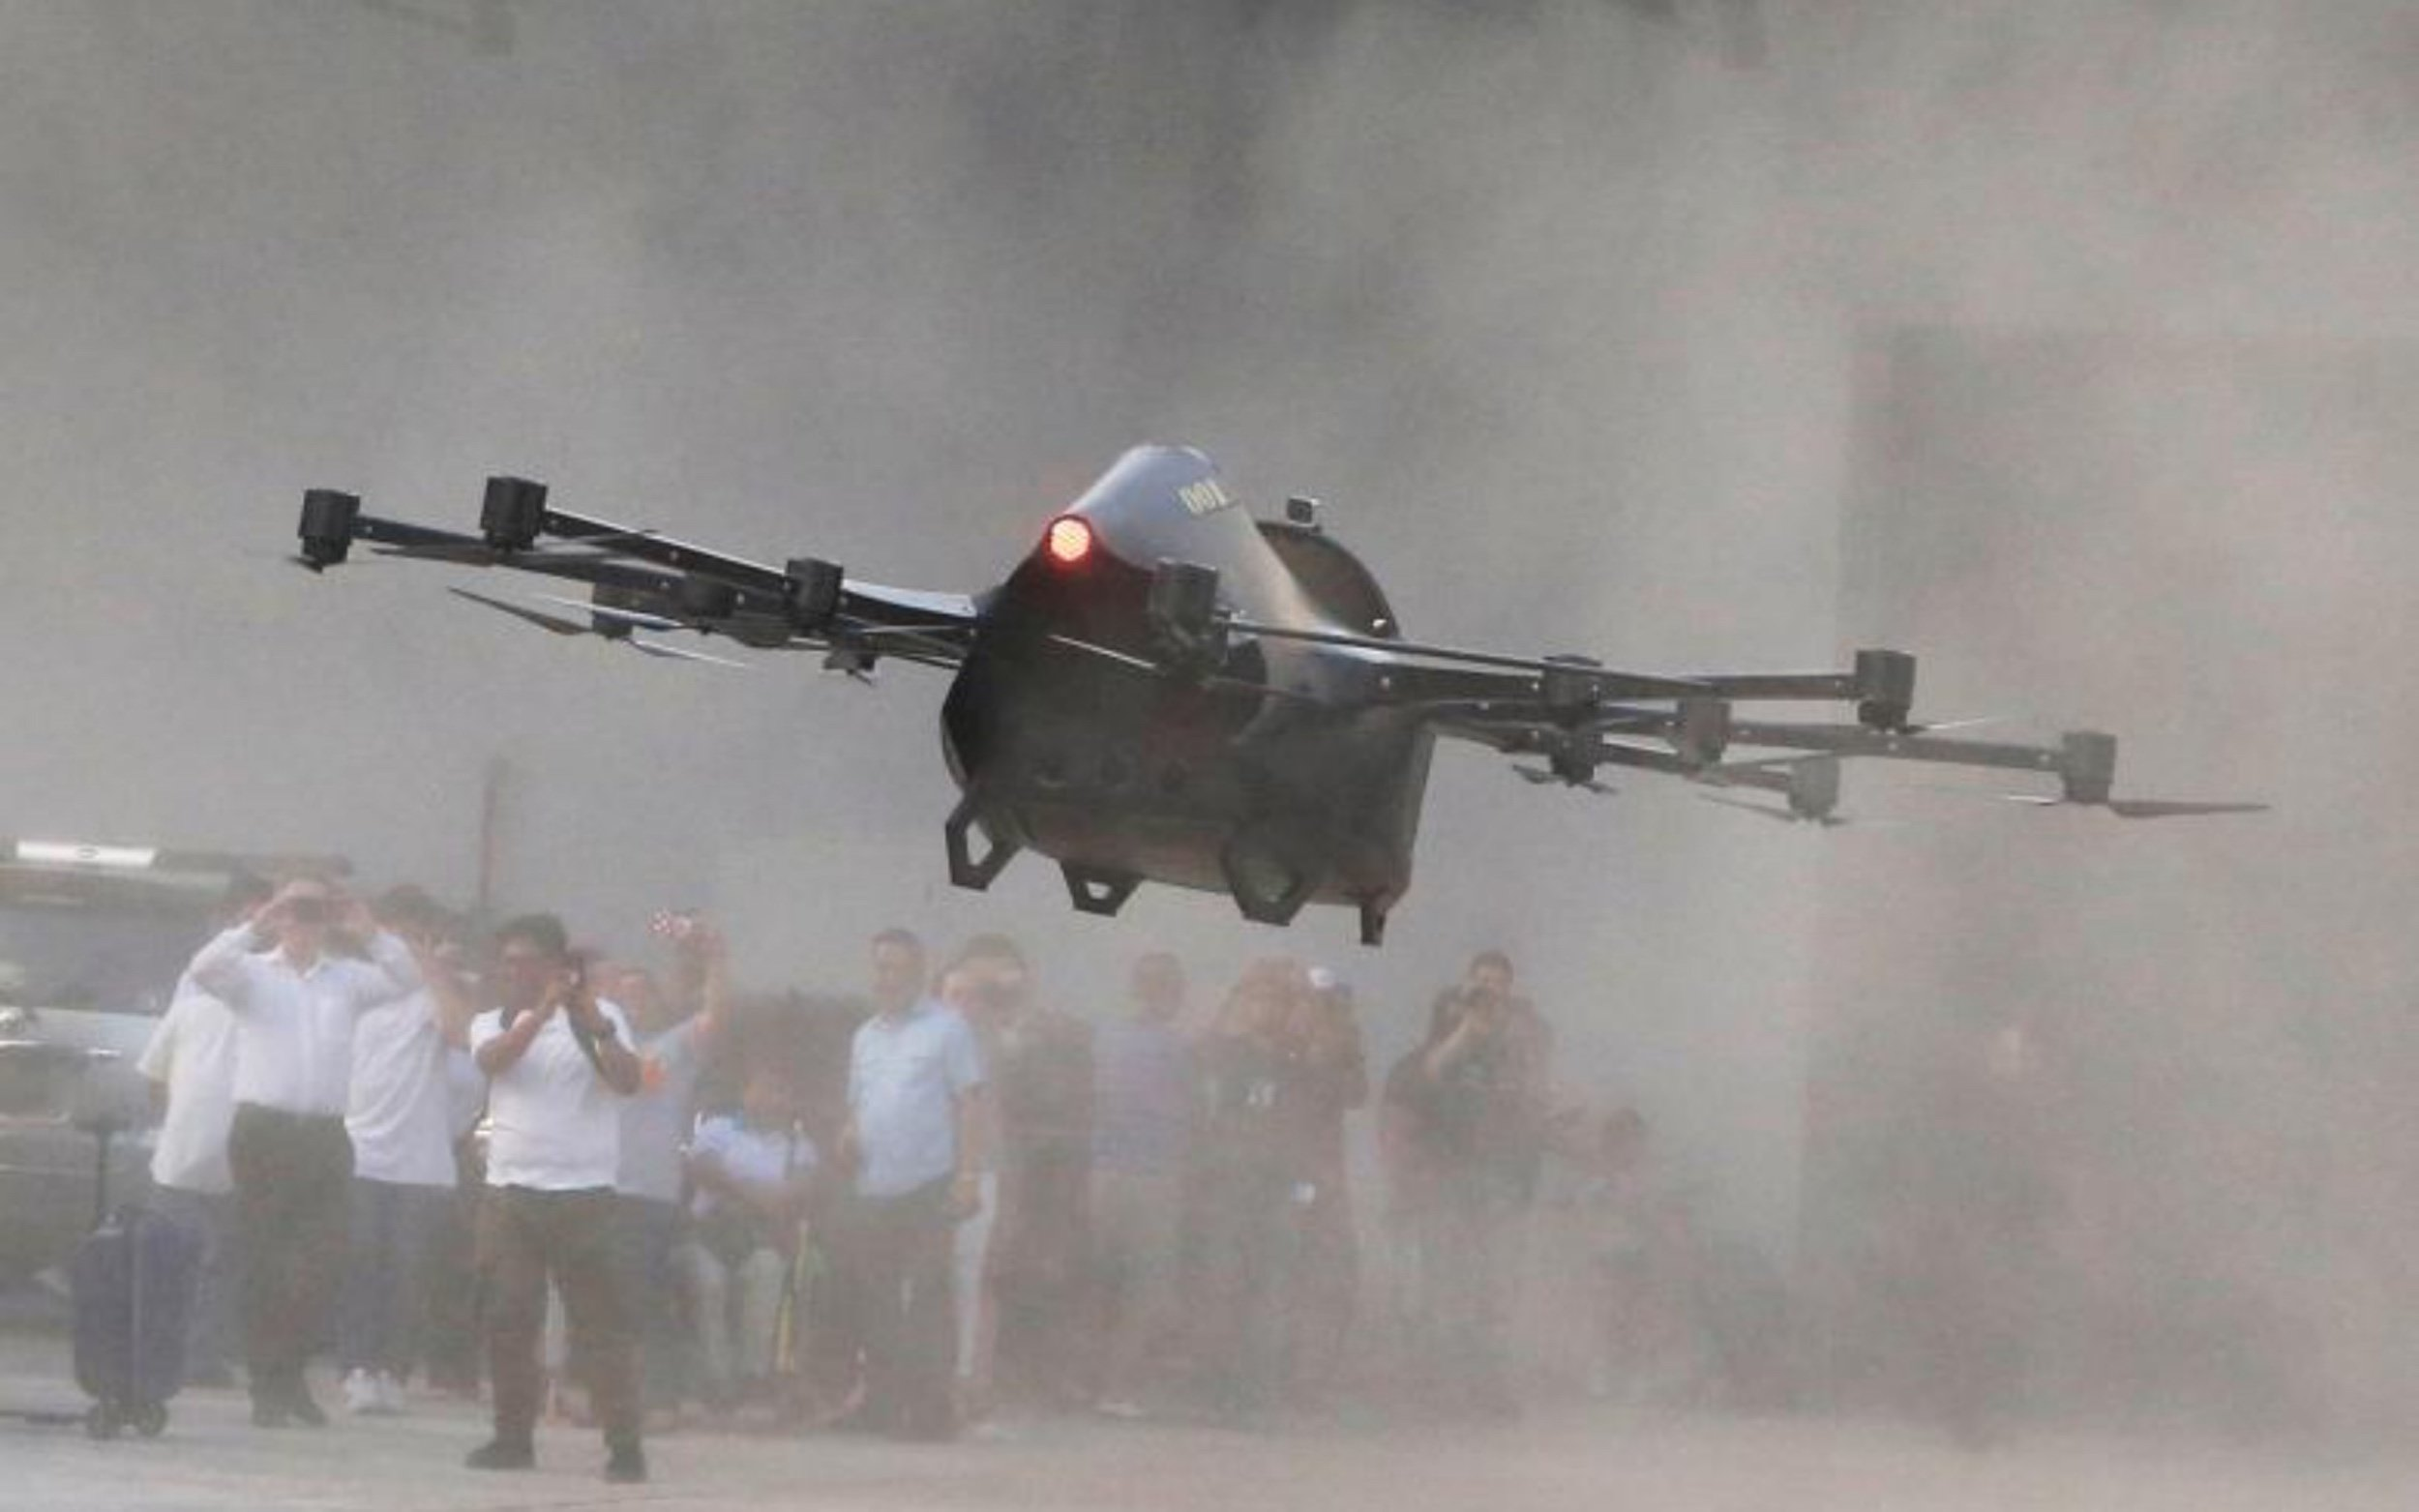 A passenger drone from Philippine inventor aims to cut